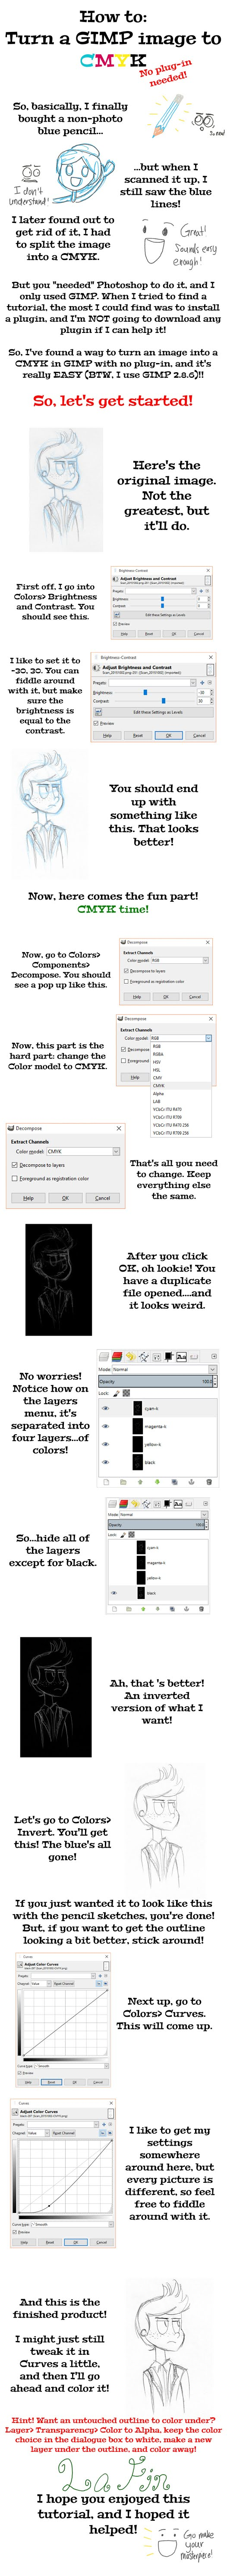 How to Remove Non-Photo Blue in GIMP